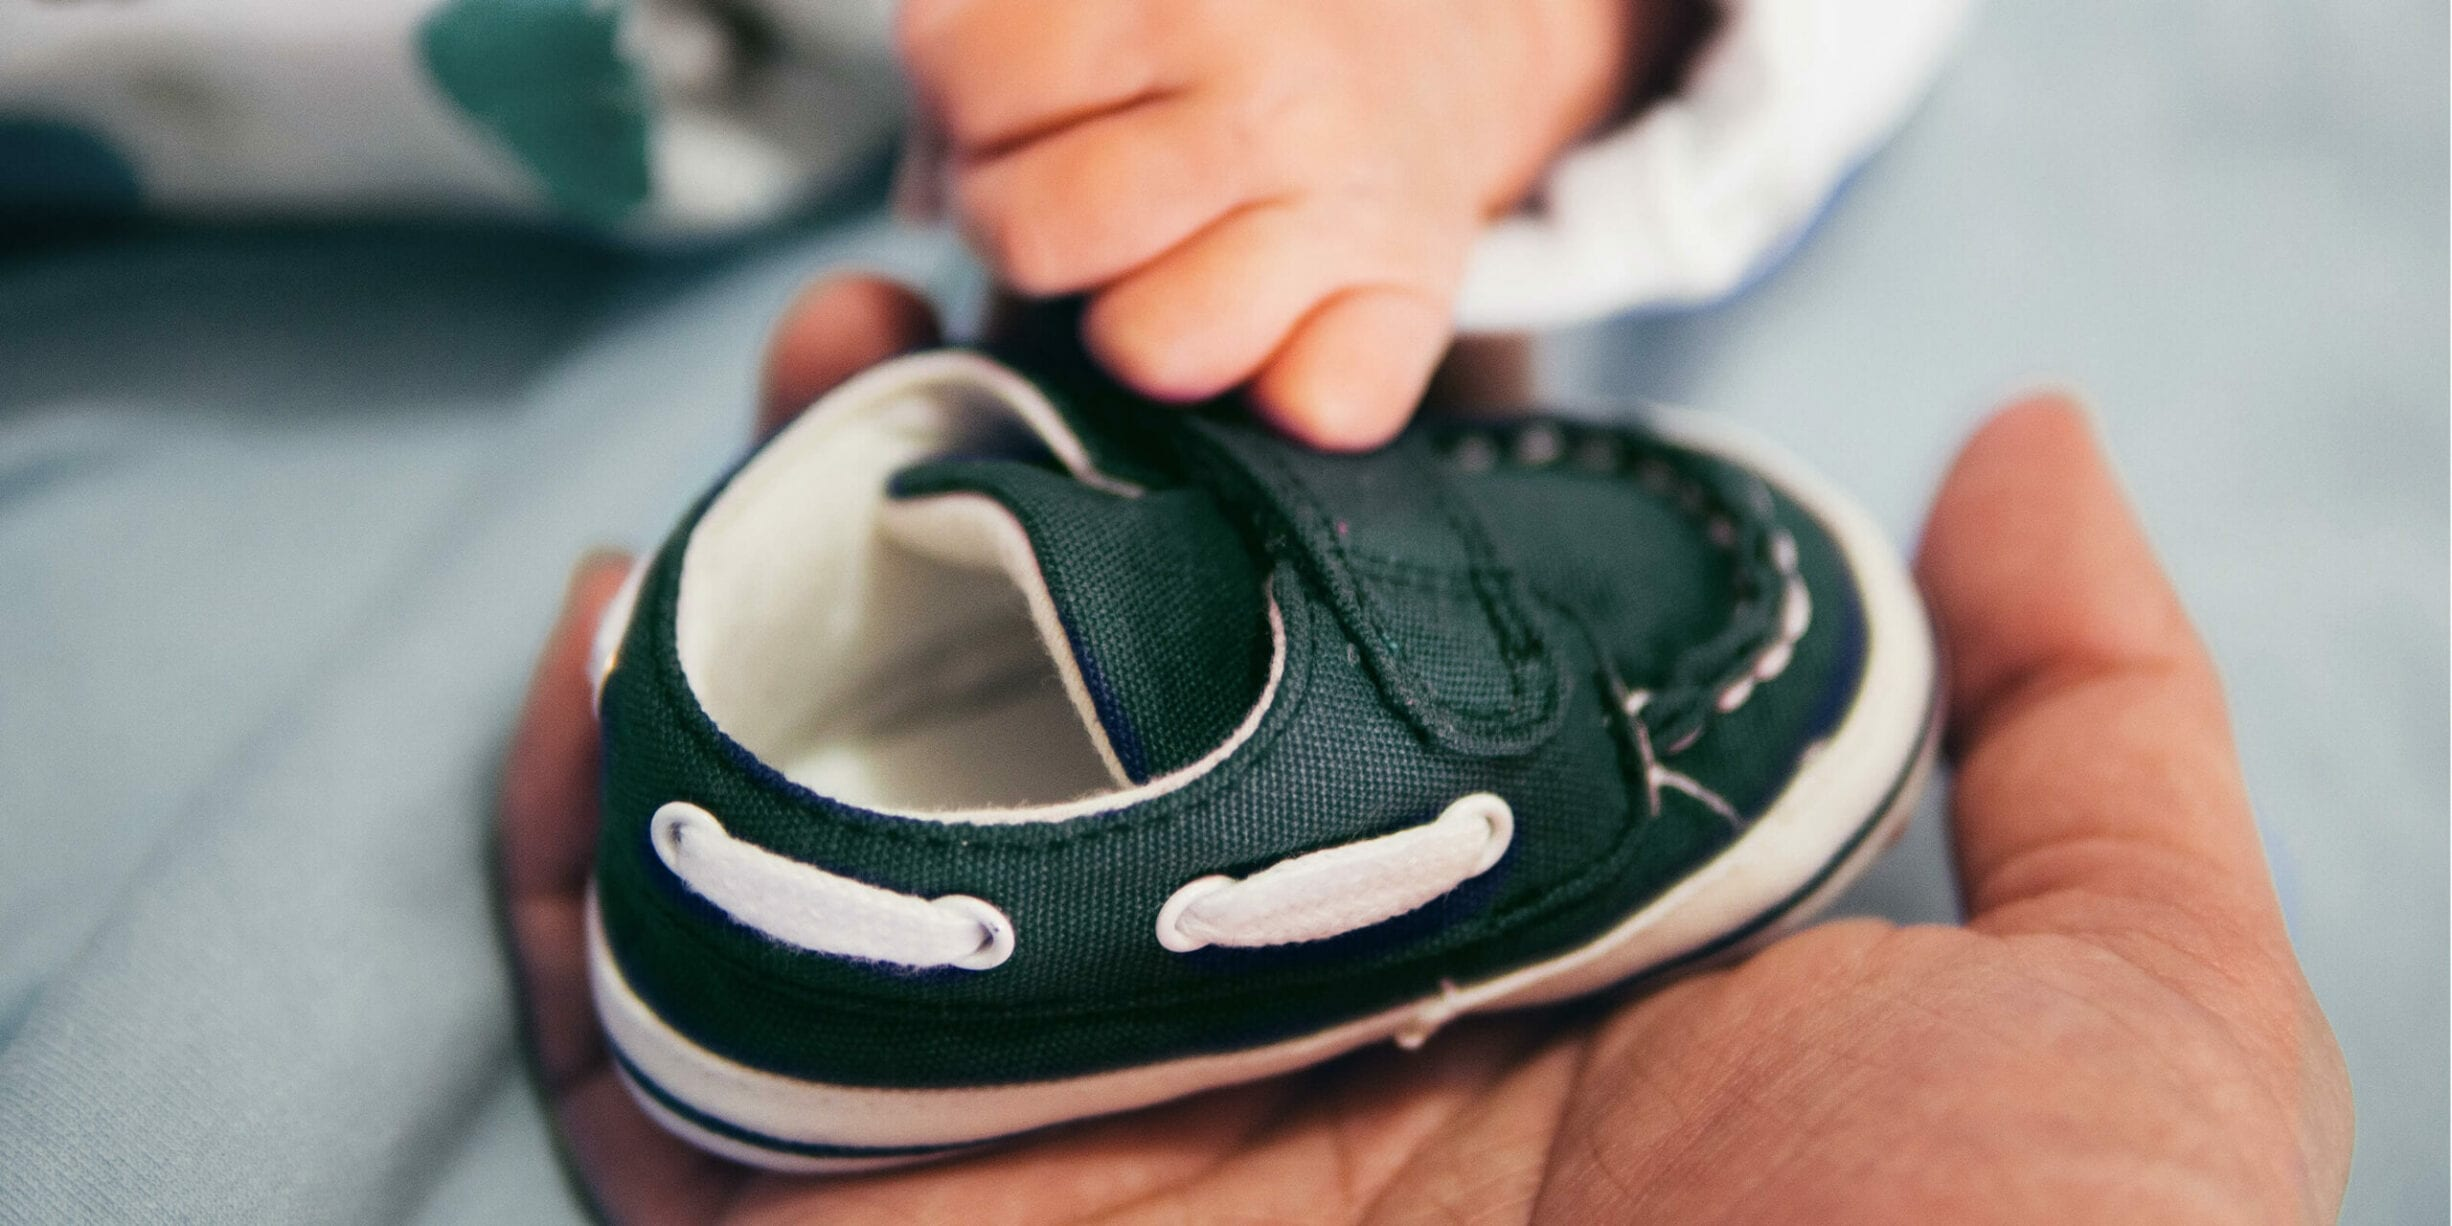 parent holding child shoe, baby hand